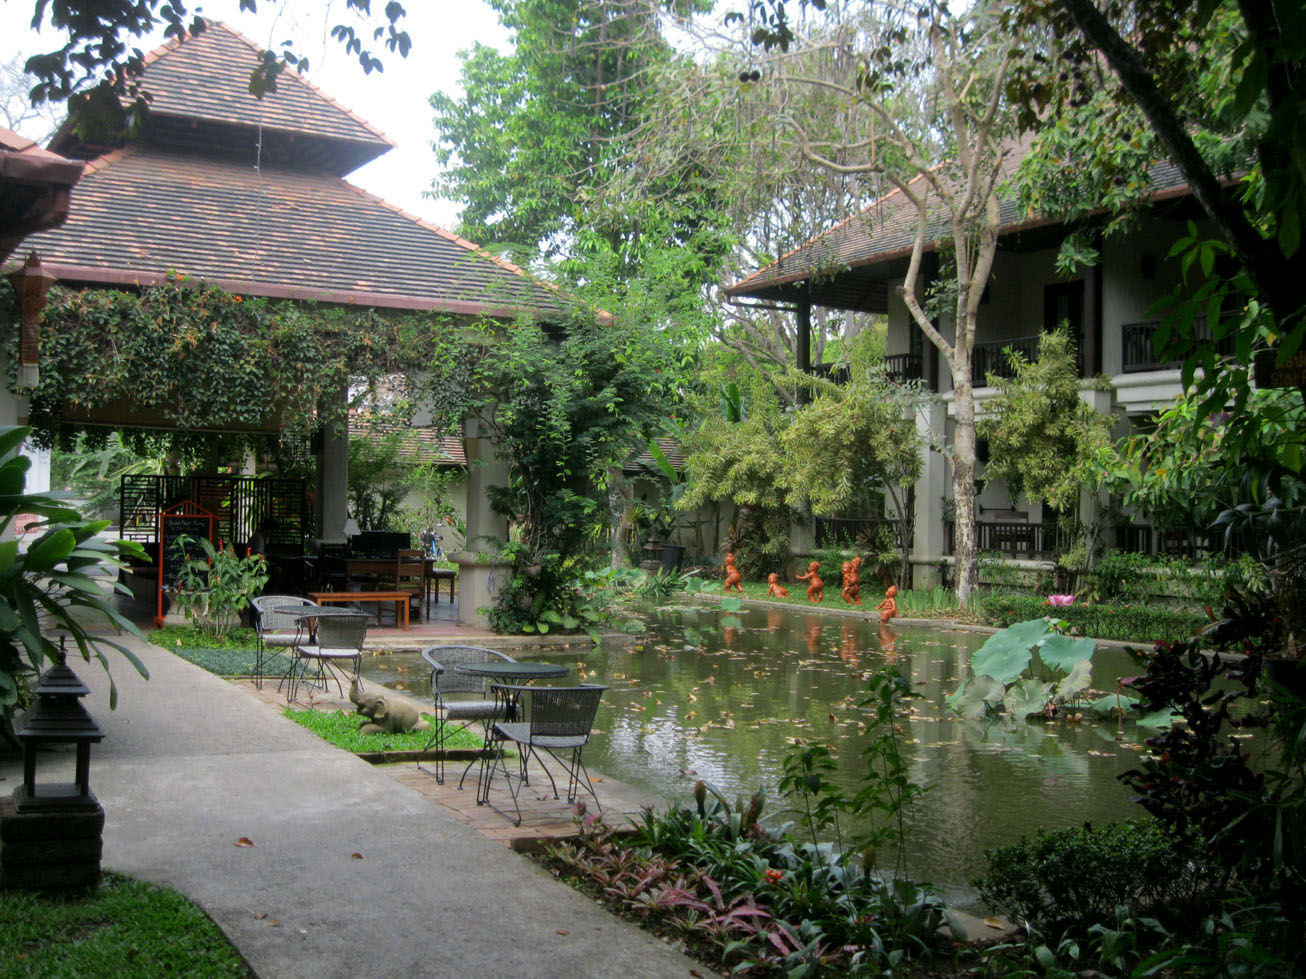 Our budget hotel outside Chiang Mai